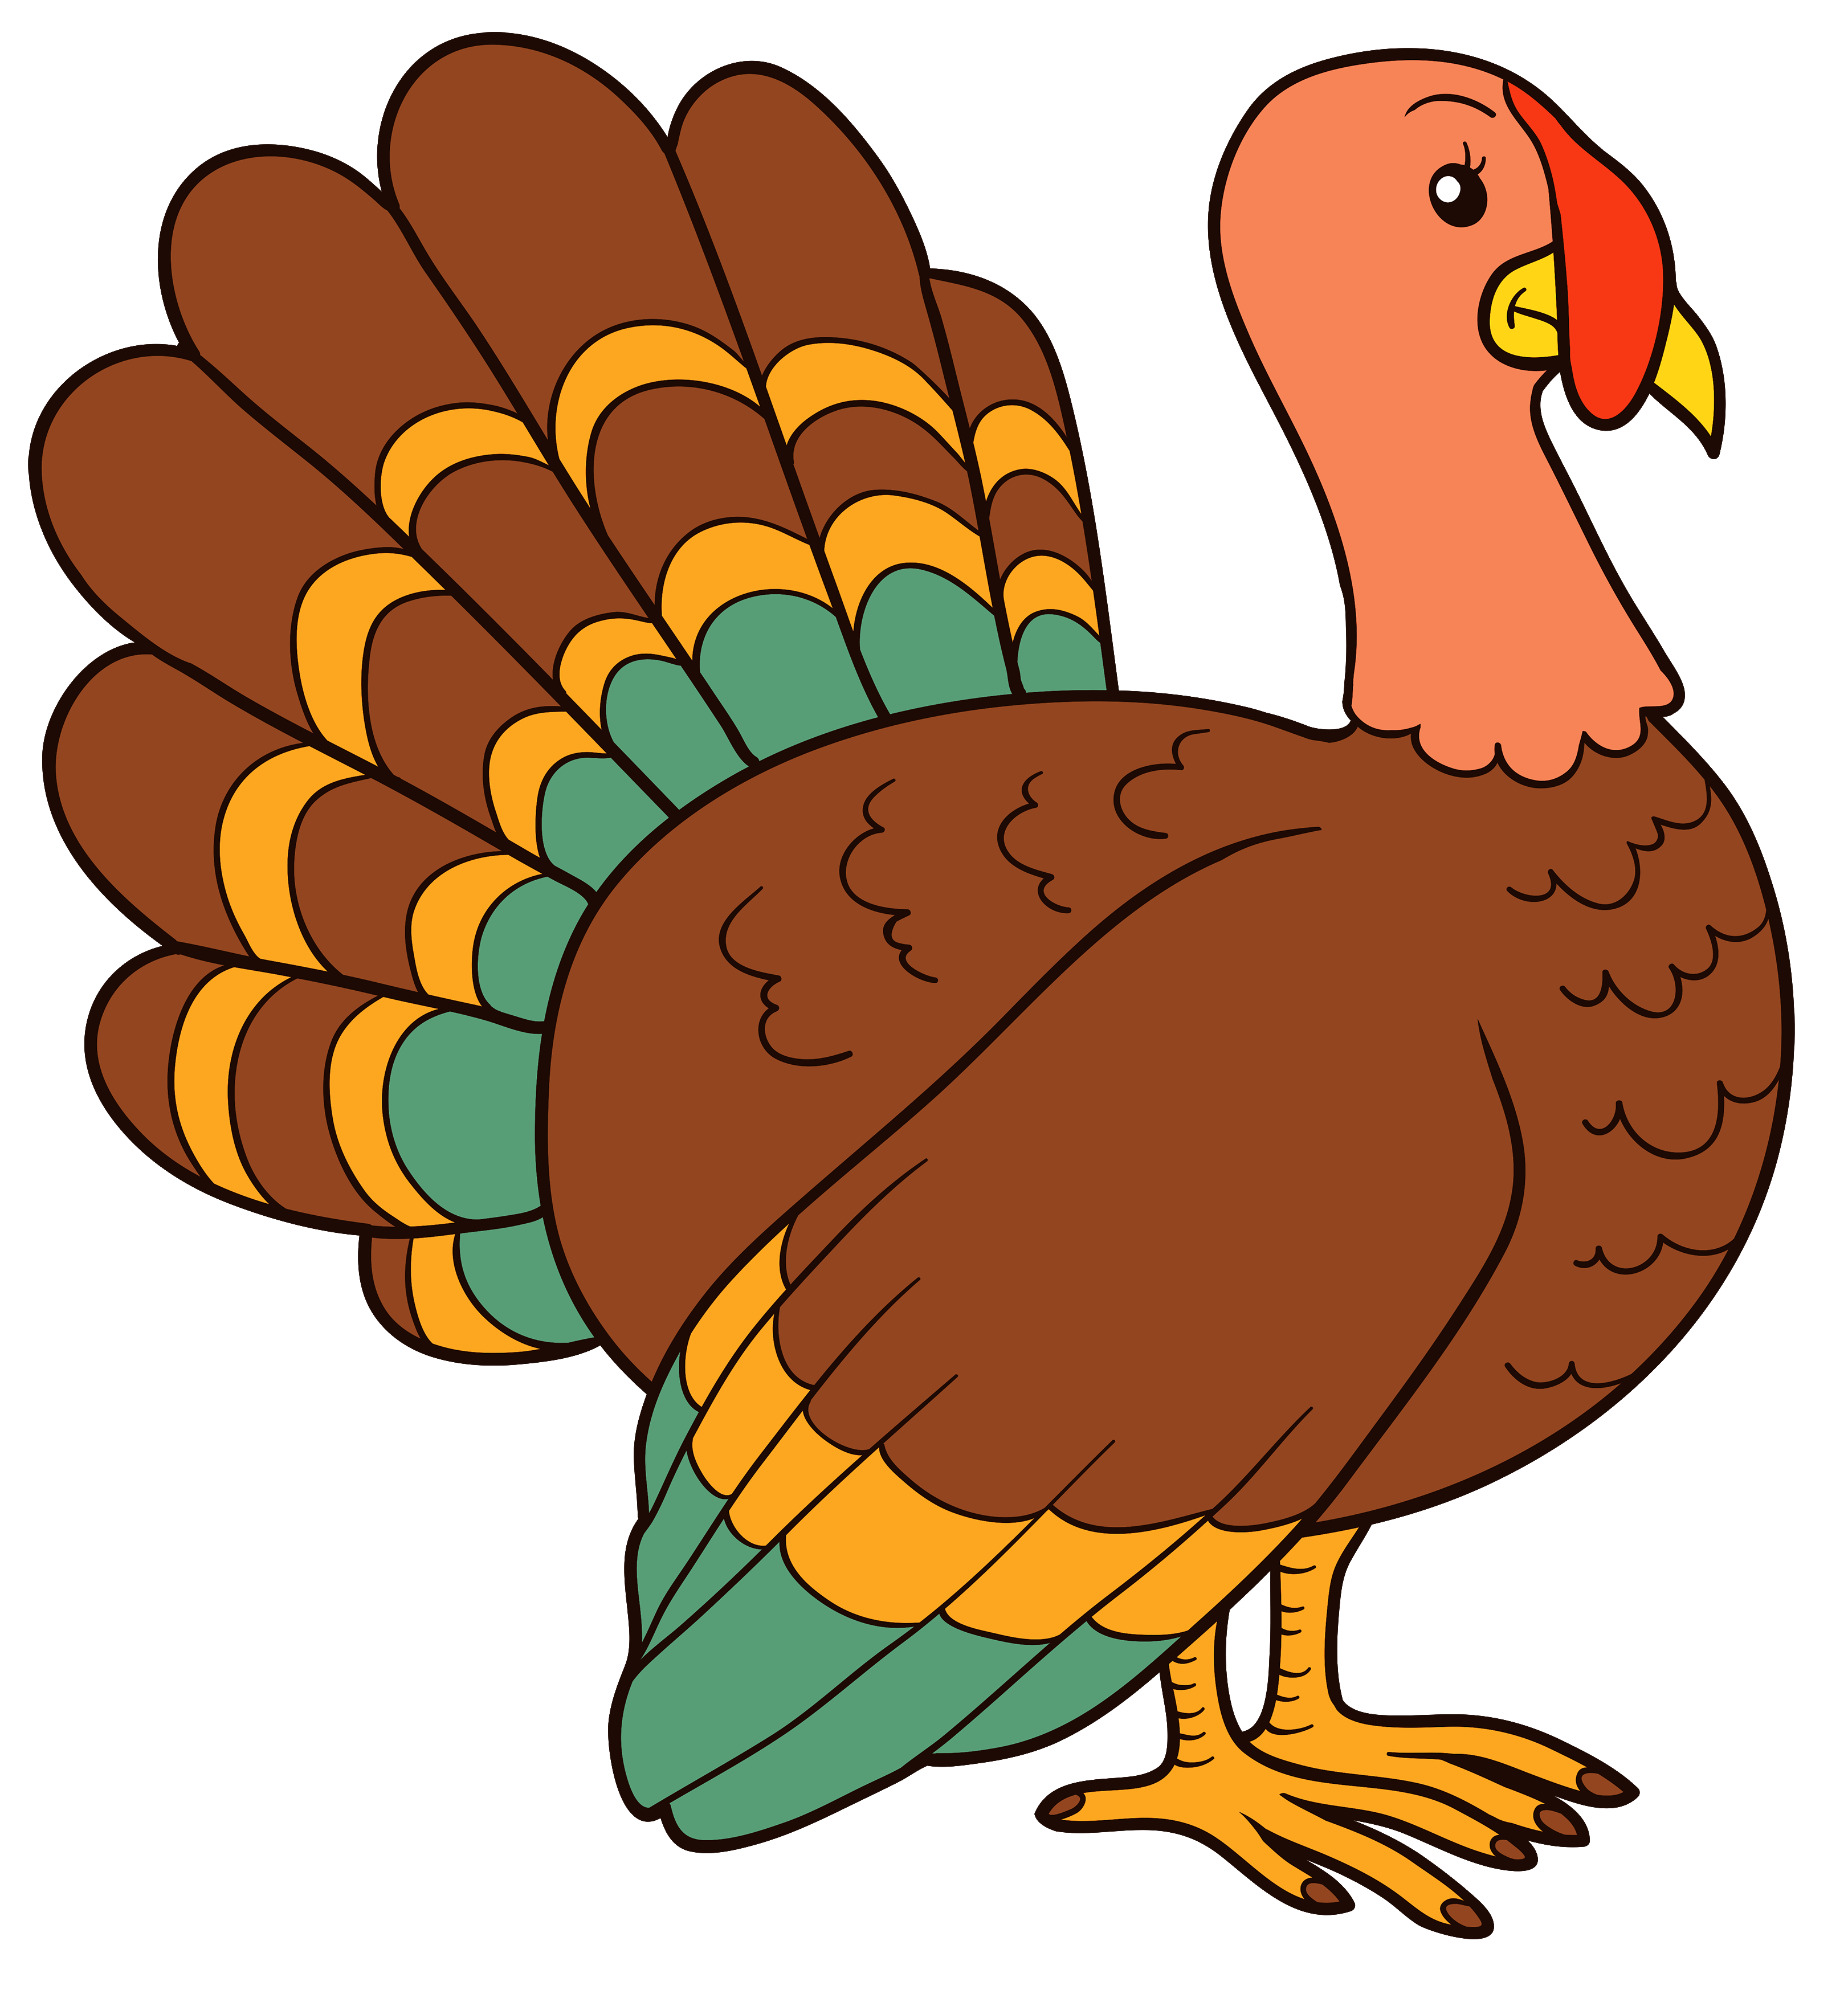 Turkey pictures clipart vector royalty free download Turkey Clipart Image Best Web Inside Transparent Png - AZPng vector royalty free download